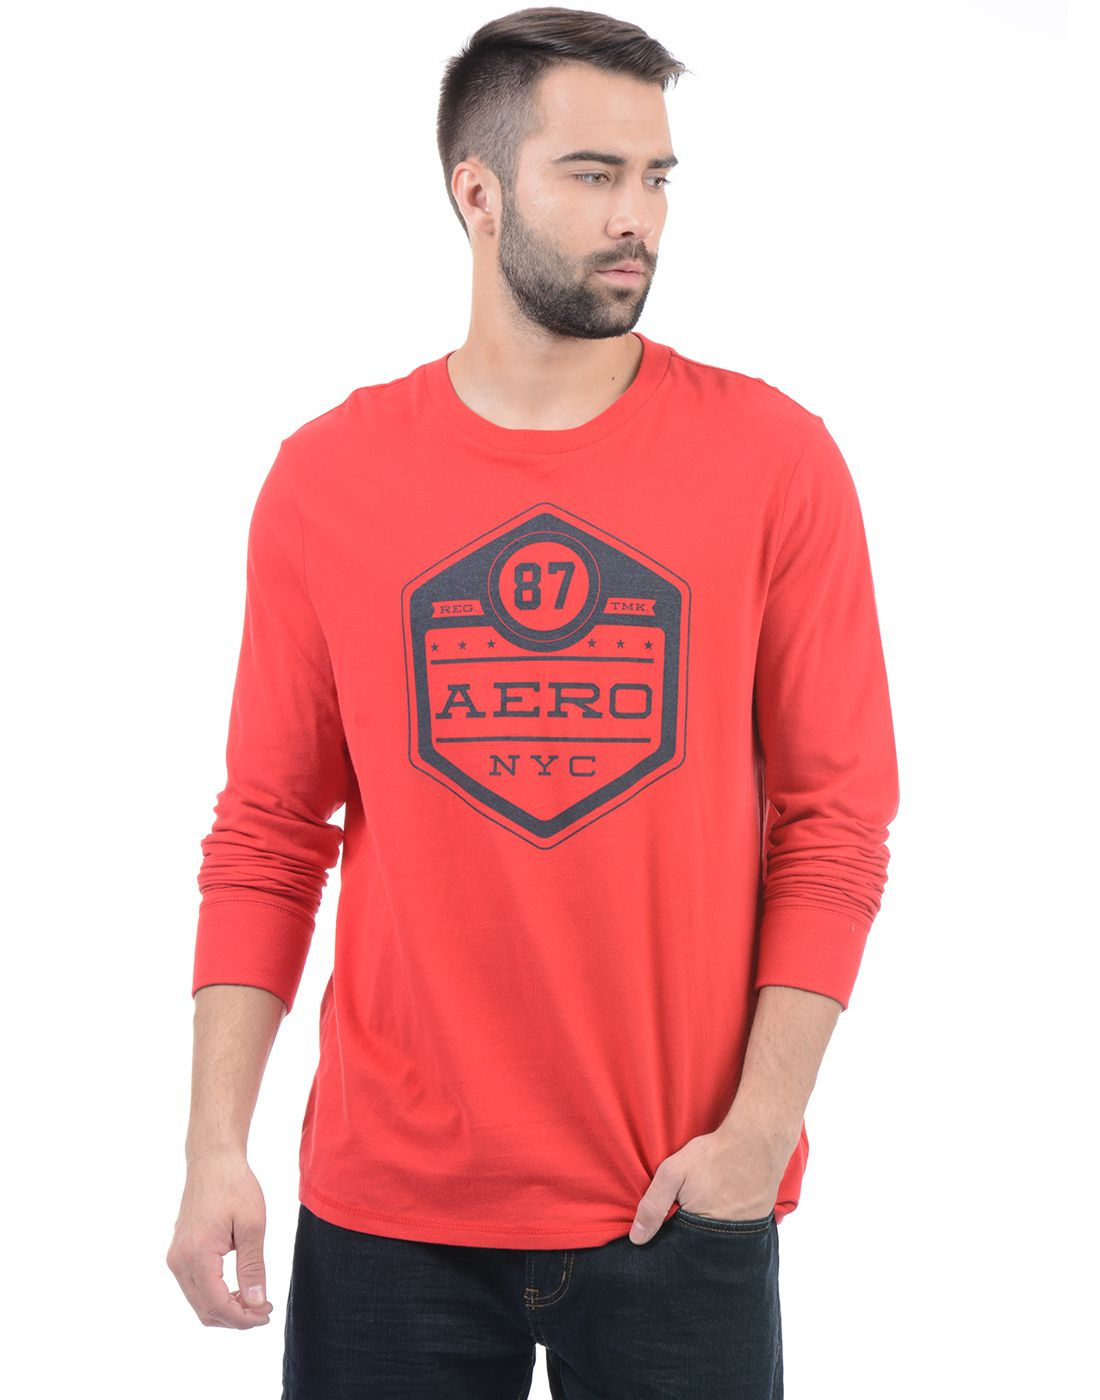 Aeropostale Red Round T-Shirt